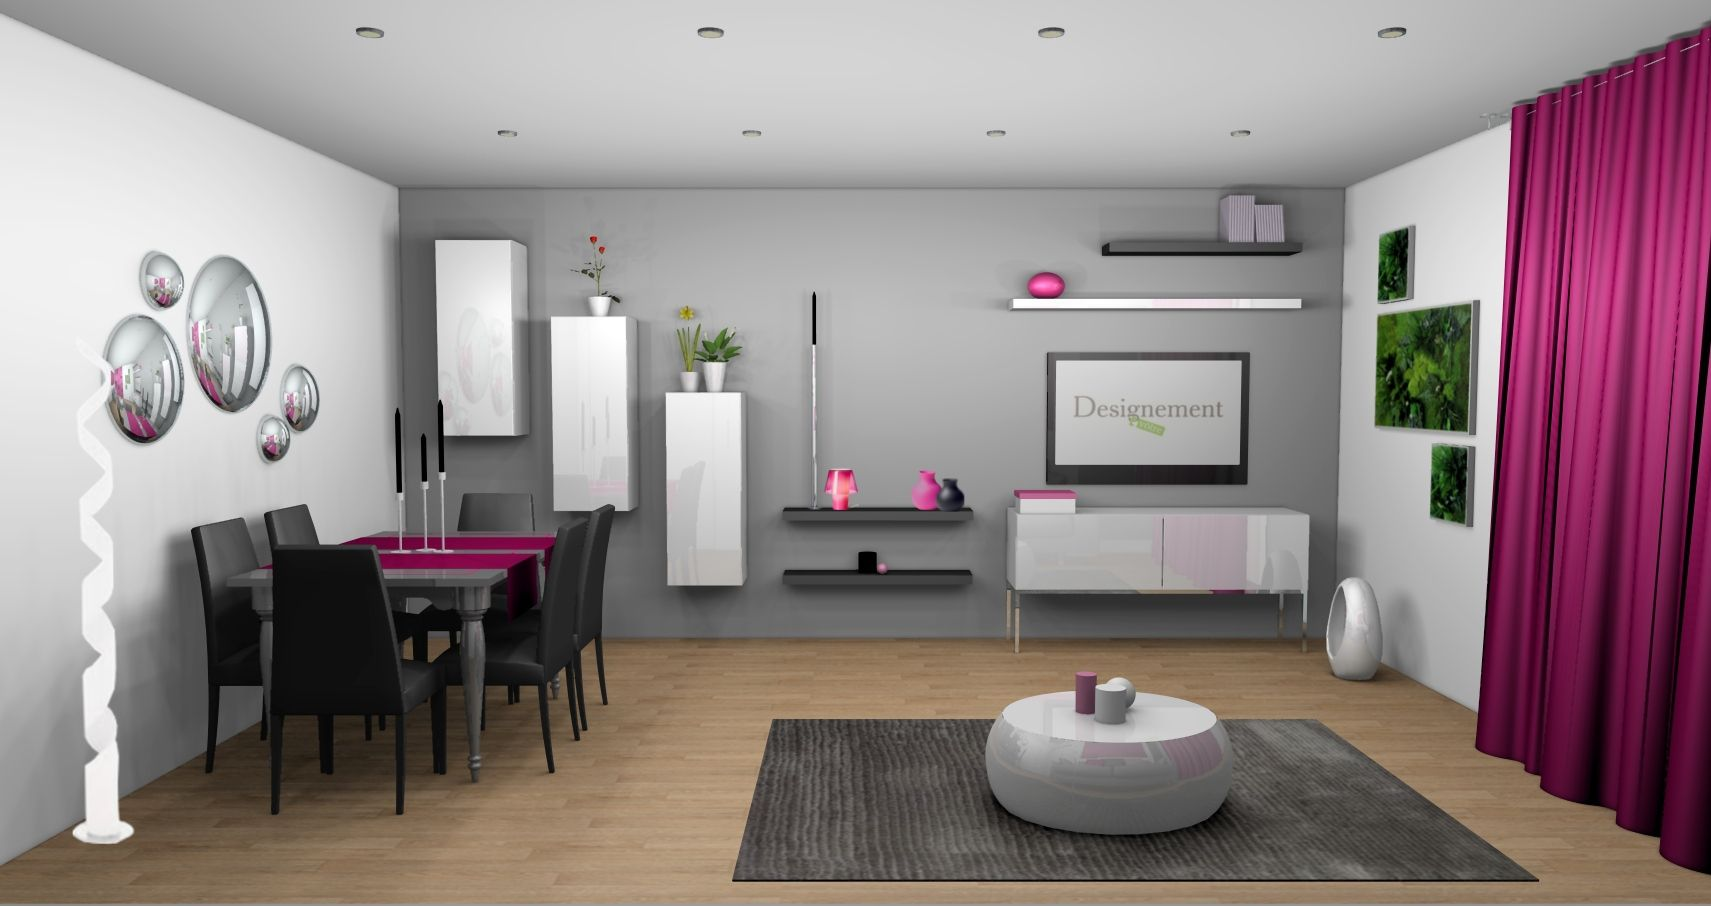 D co salon m r gris et blanc touche de couleur fushia living room pinterest salons for Decoration chambre gris et fushia